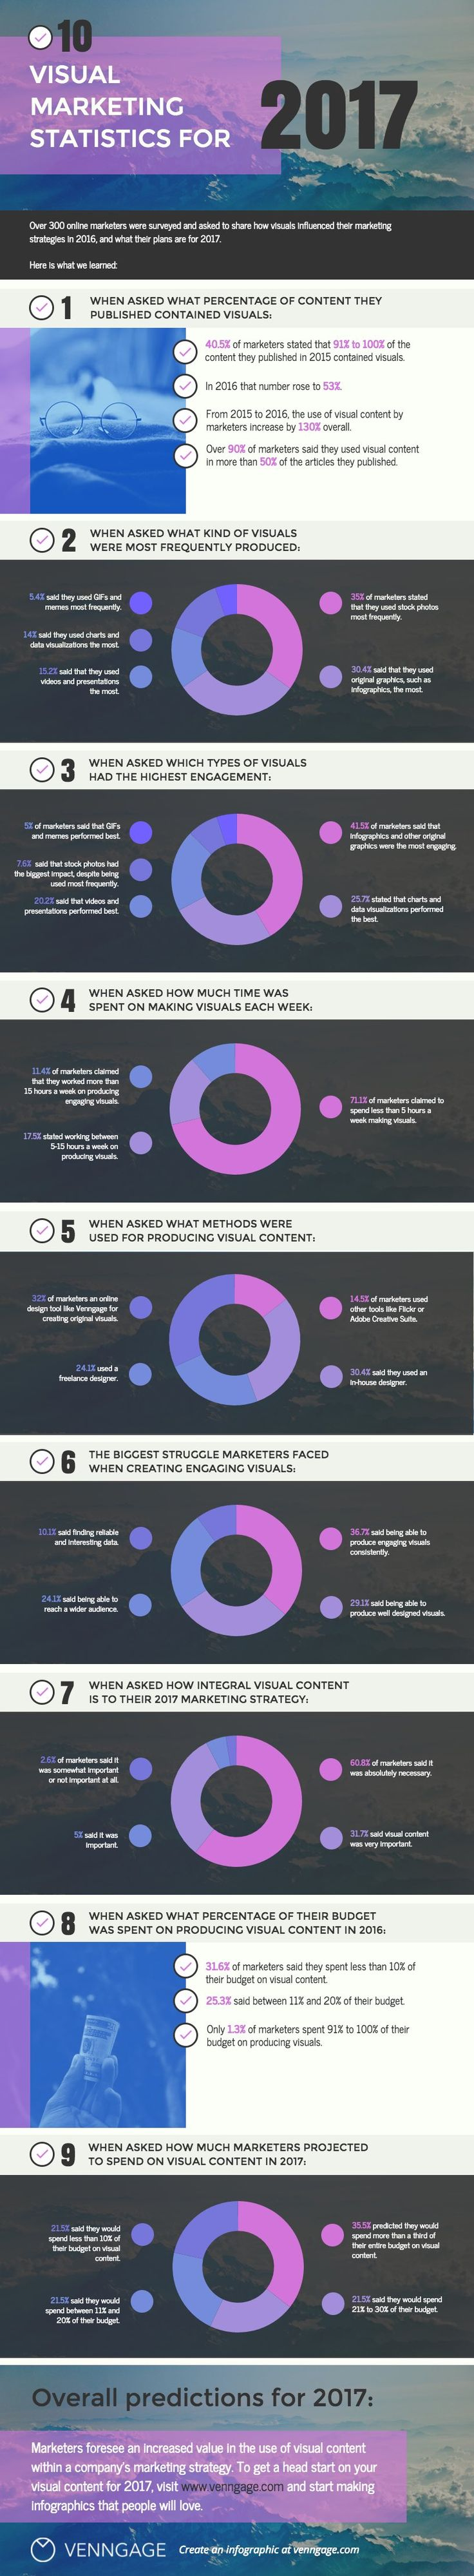 The use of visual content in marketing is growing. Half of all content created by digital marketers contains a visual element. Find out more visual marketing statistics in this handy infographic.